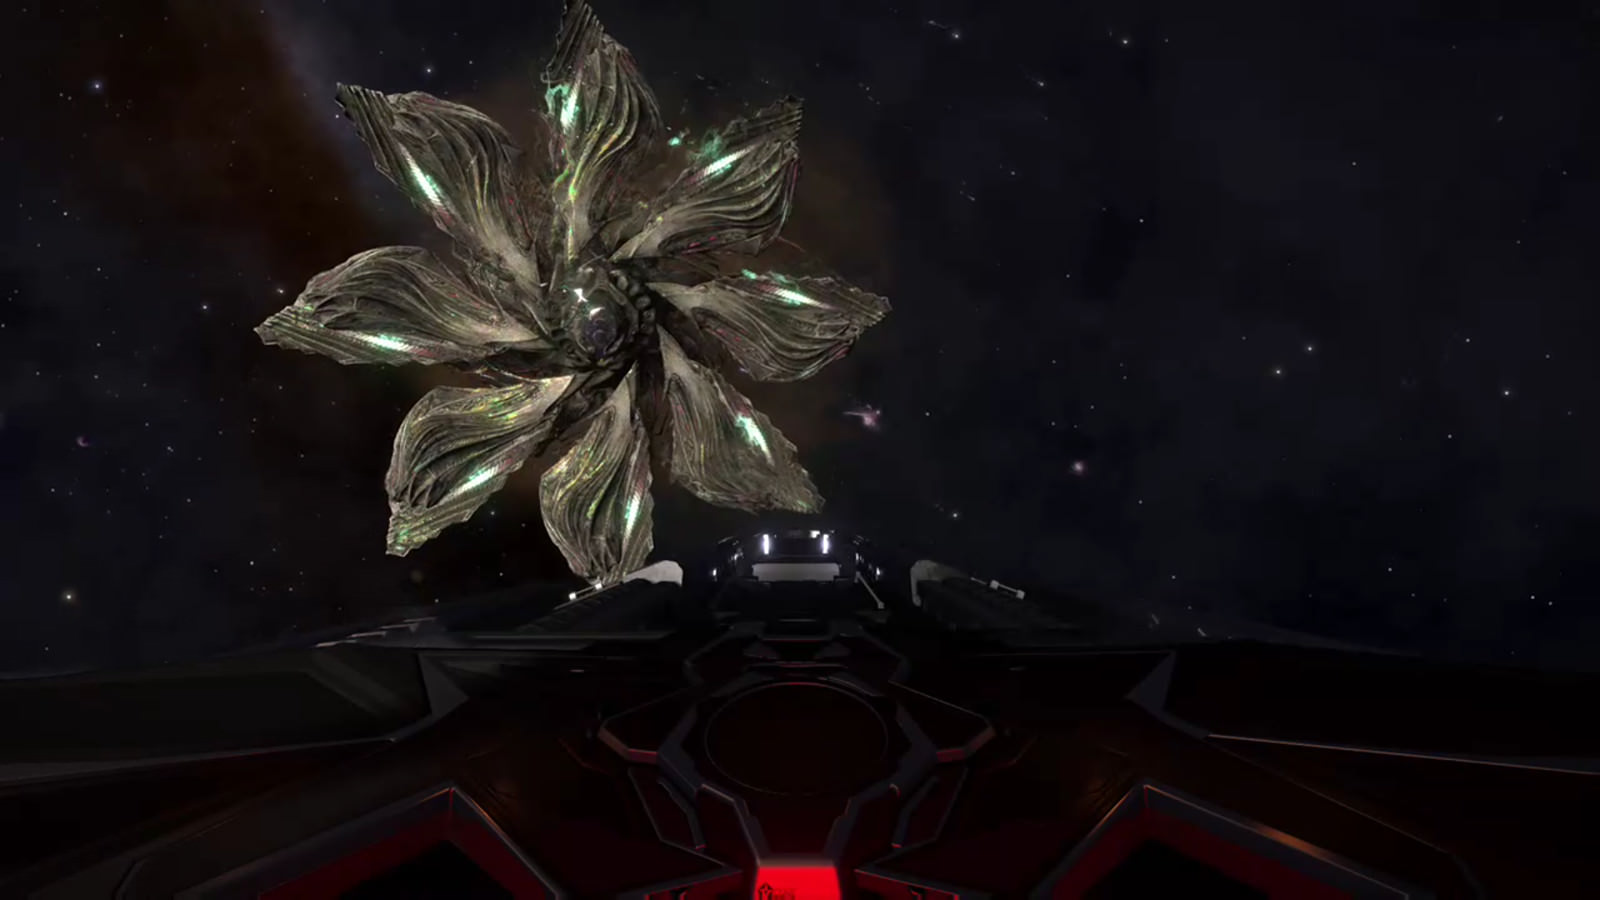 After years of speculation, aliens have been found in Elite: Dangerous